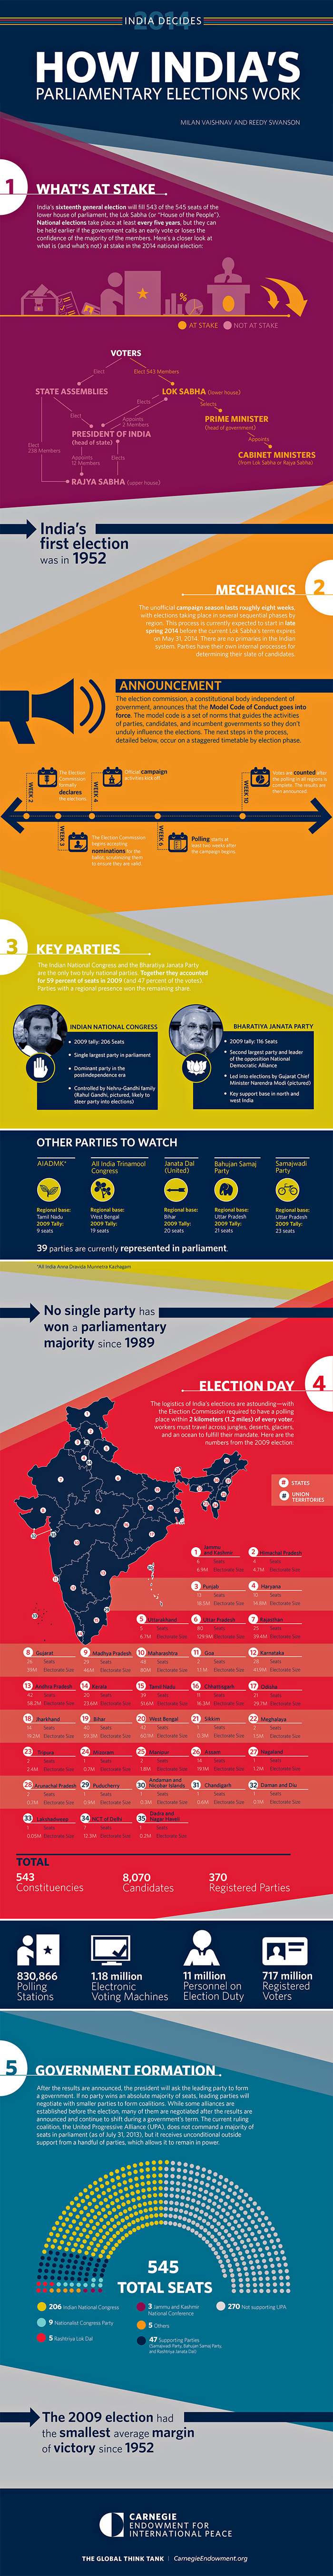 02 how-indian-parliamentary-election-works